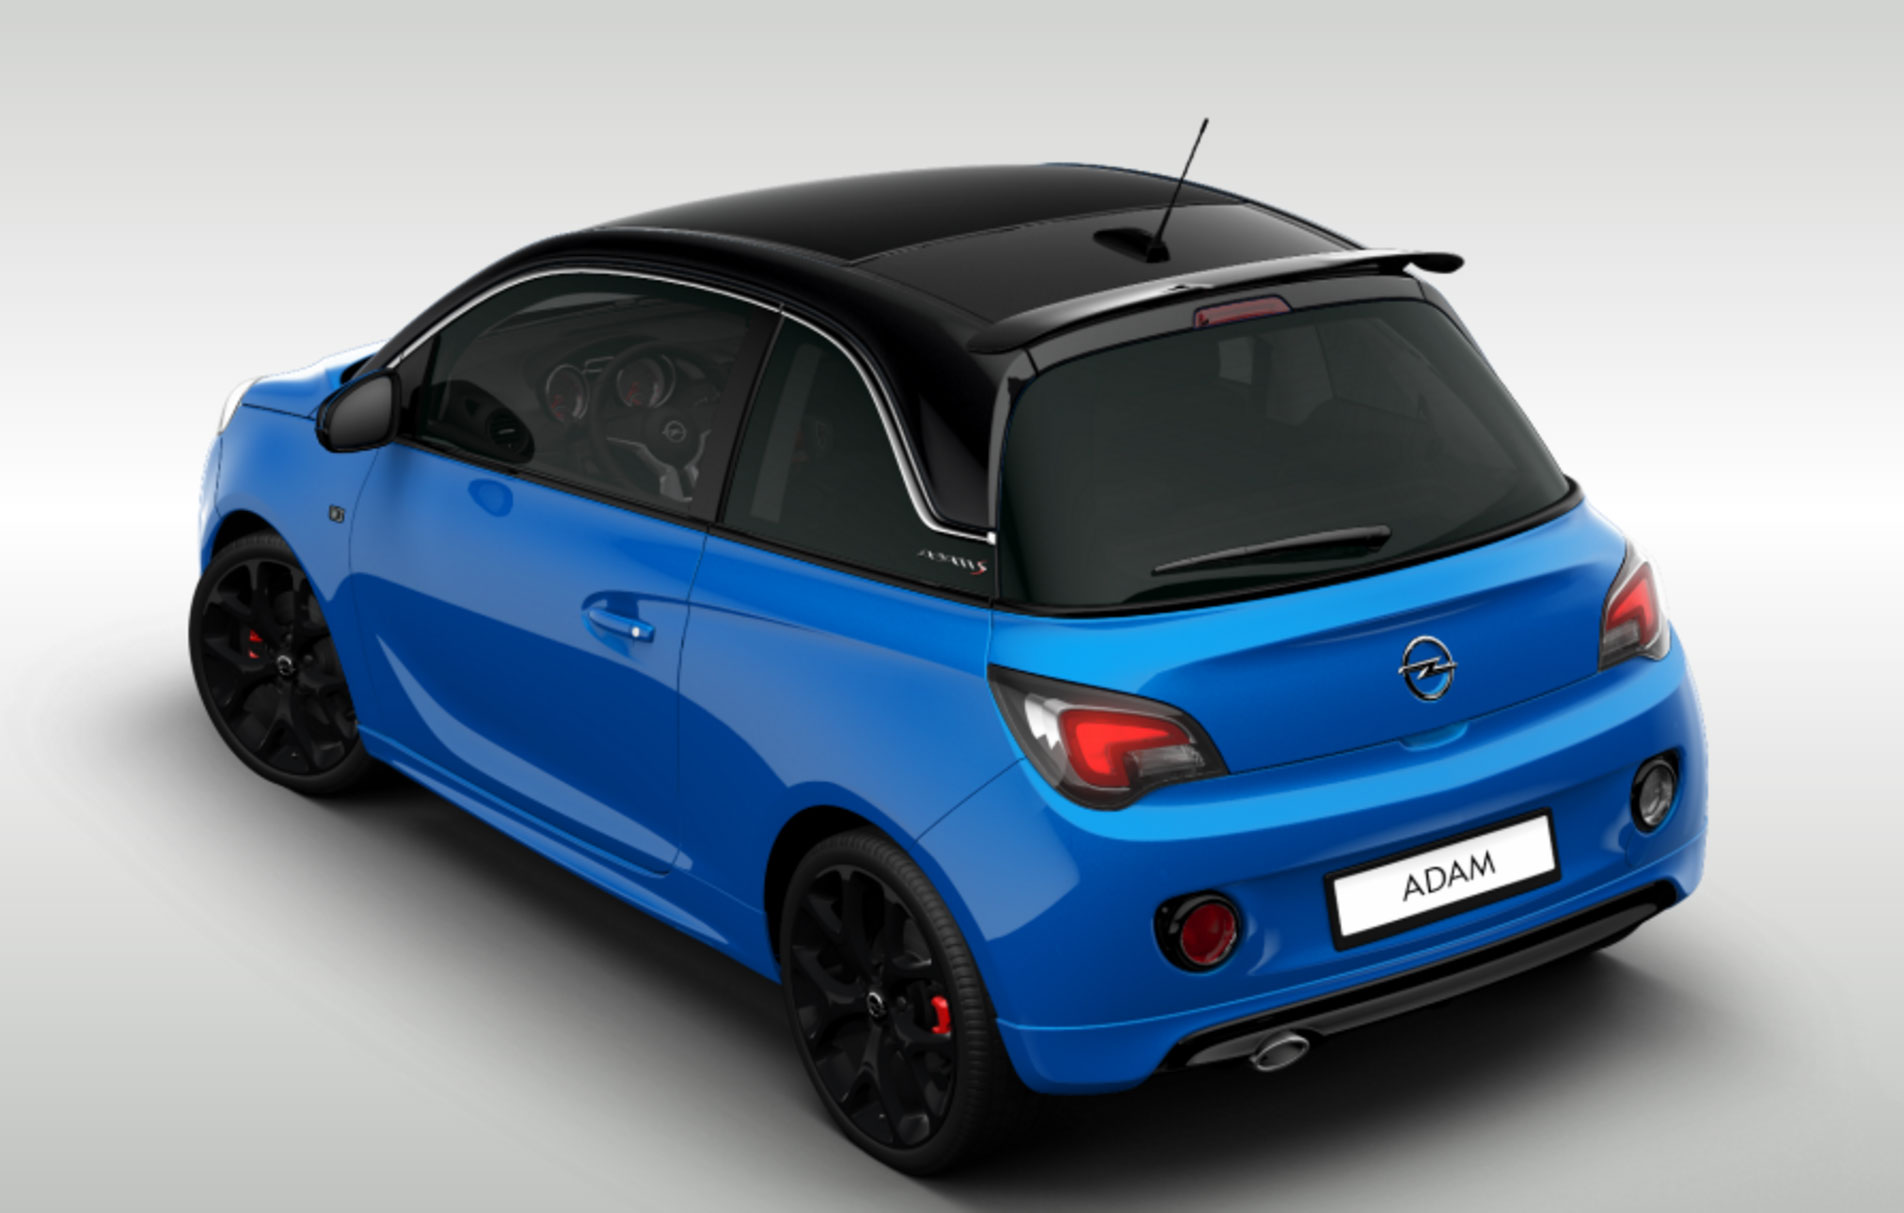 opel adam s driven for 33333km my experience fischirocks. Black Bedroom Furniture Sets. Home Design Ideas